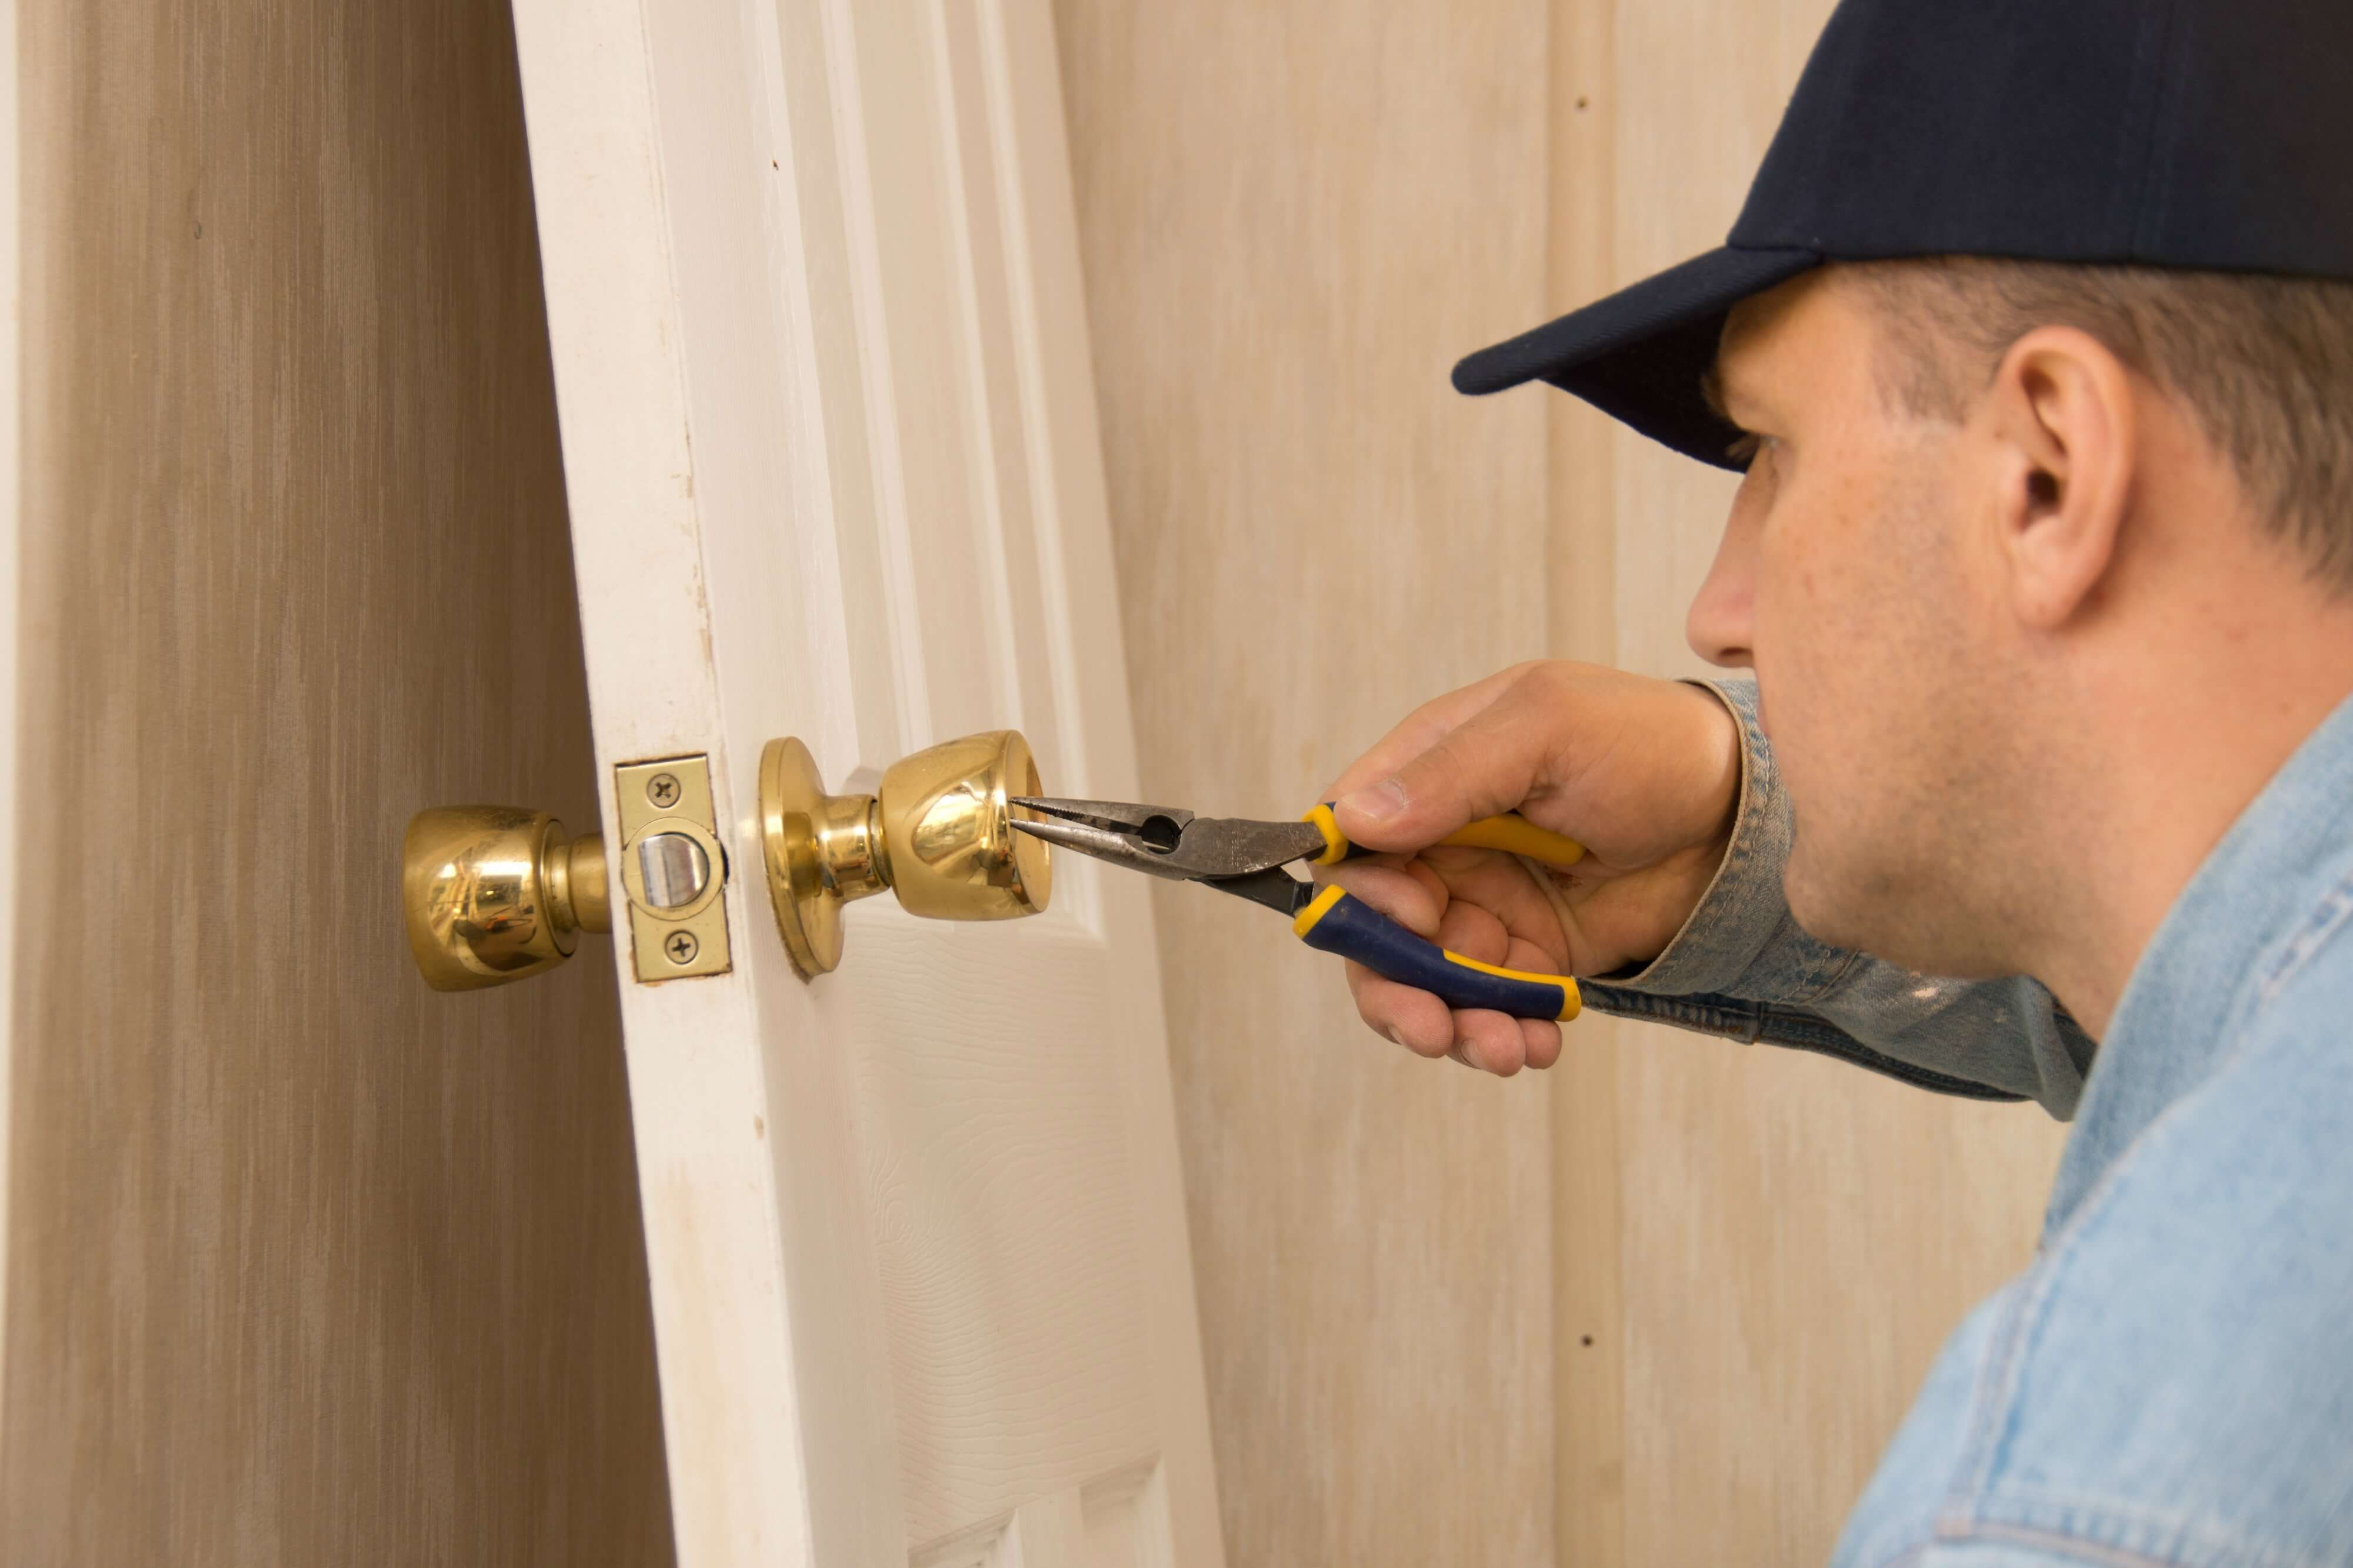 24 Hour Locksmith in Brushy Creek, TX